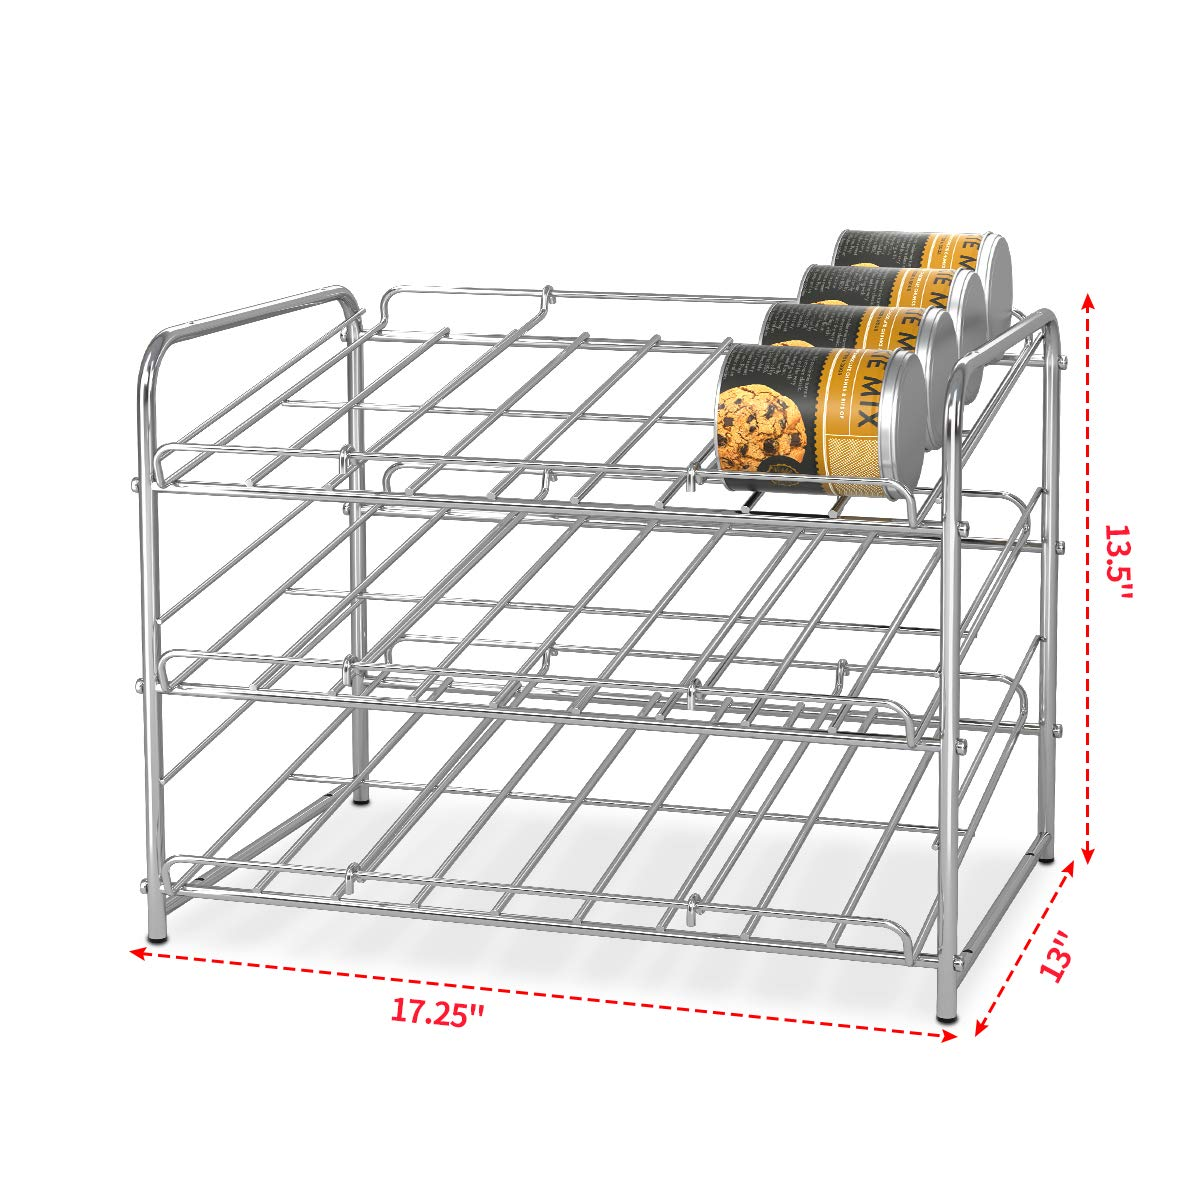 Simple Trending 2 Pack Can Rack Organizer, Stackable Can Storage Dispenser Holds up to 72 Cans for Kitchen Cabinet or Pantry, Chrome by Simple Trending